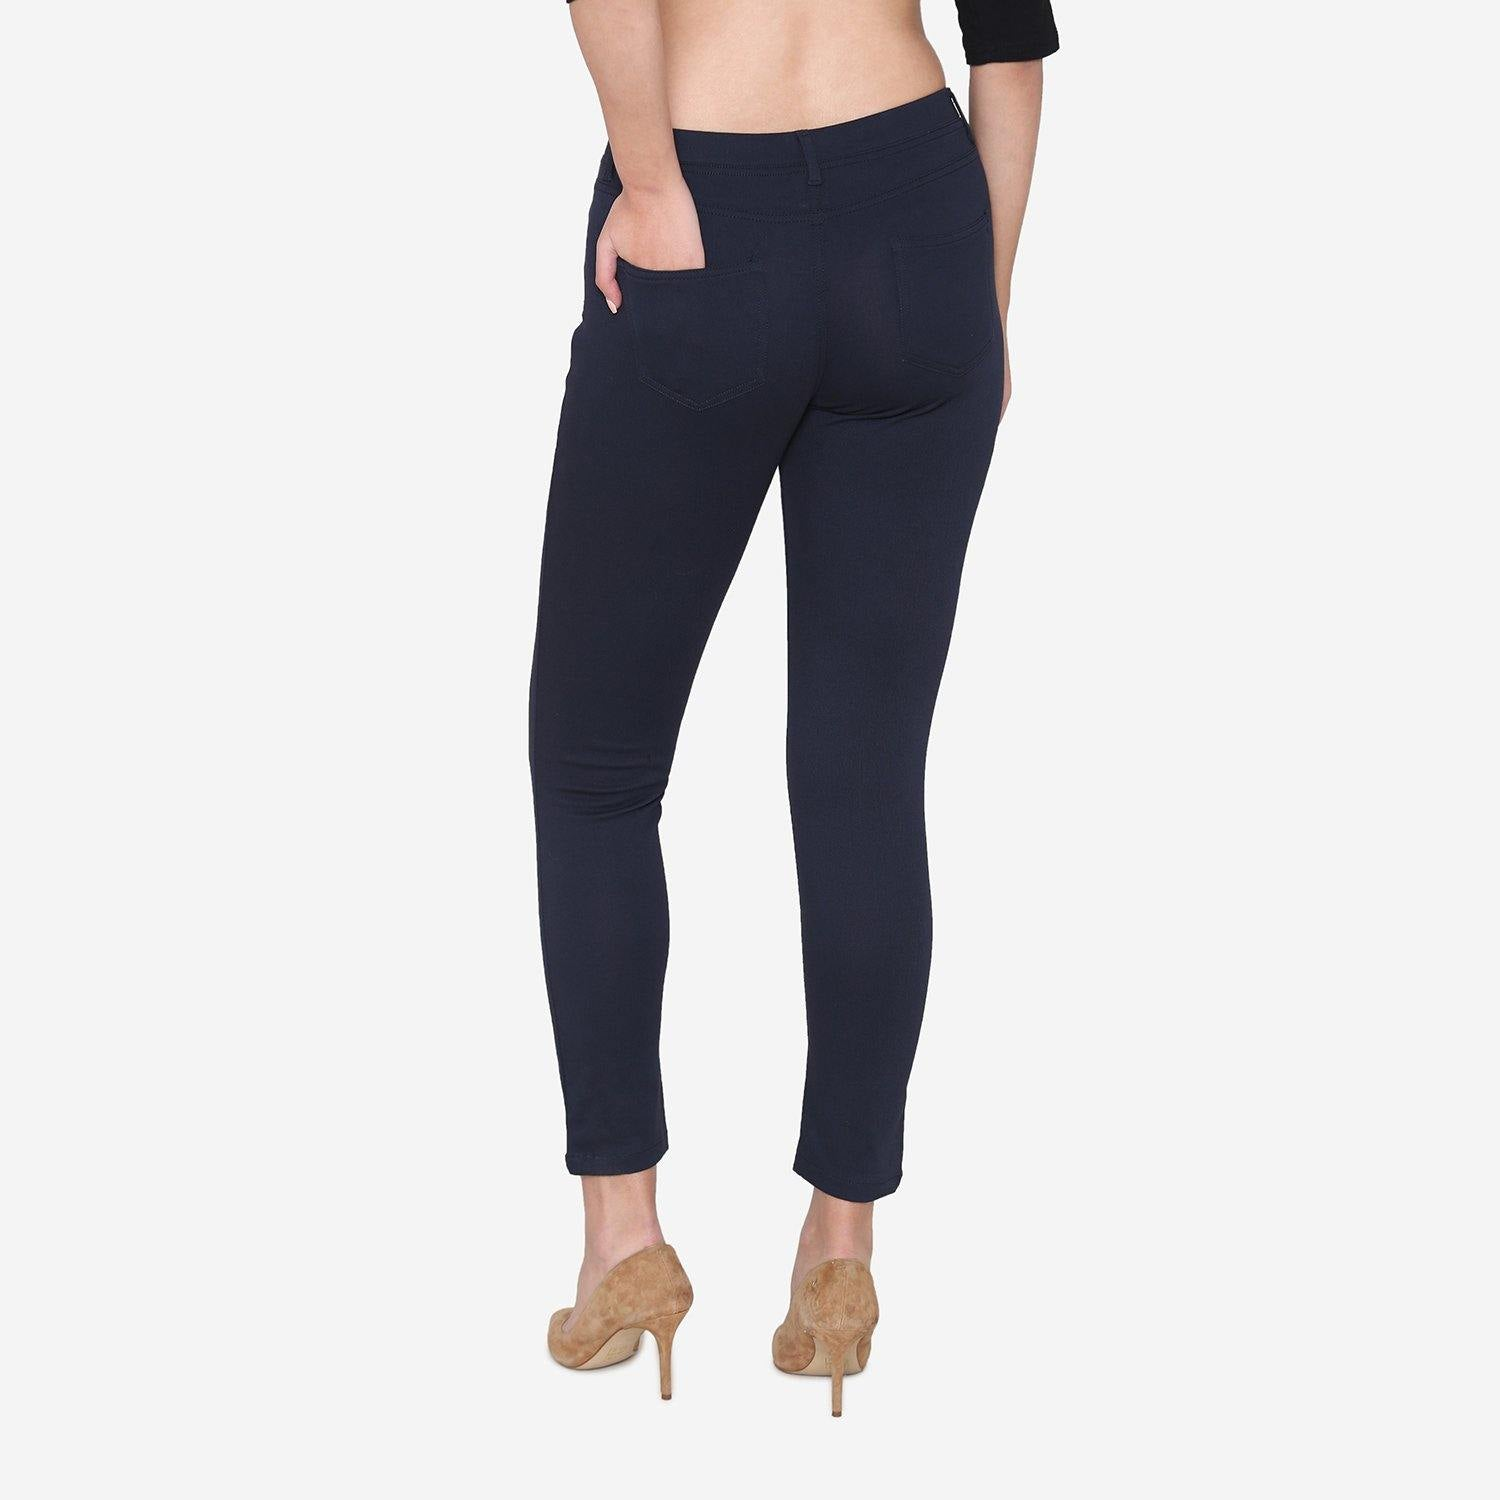 Vami Women's  Cotton Stretchable Jeggings - Navy